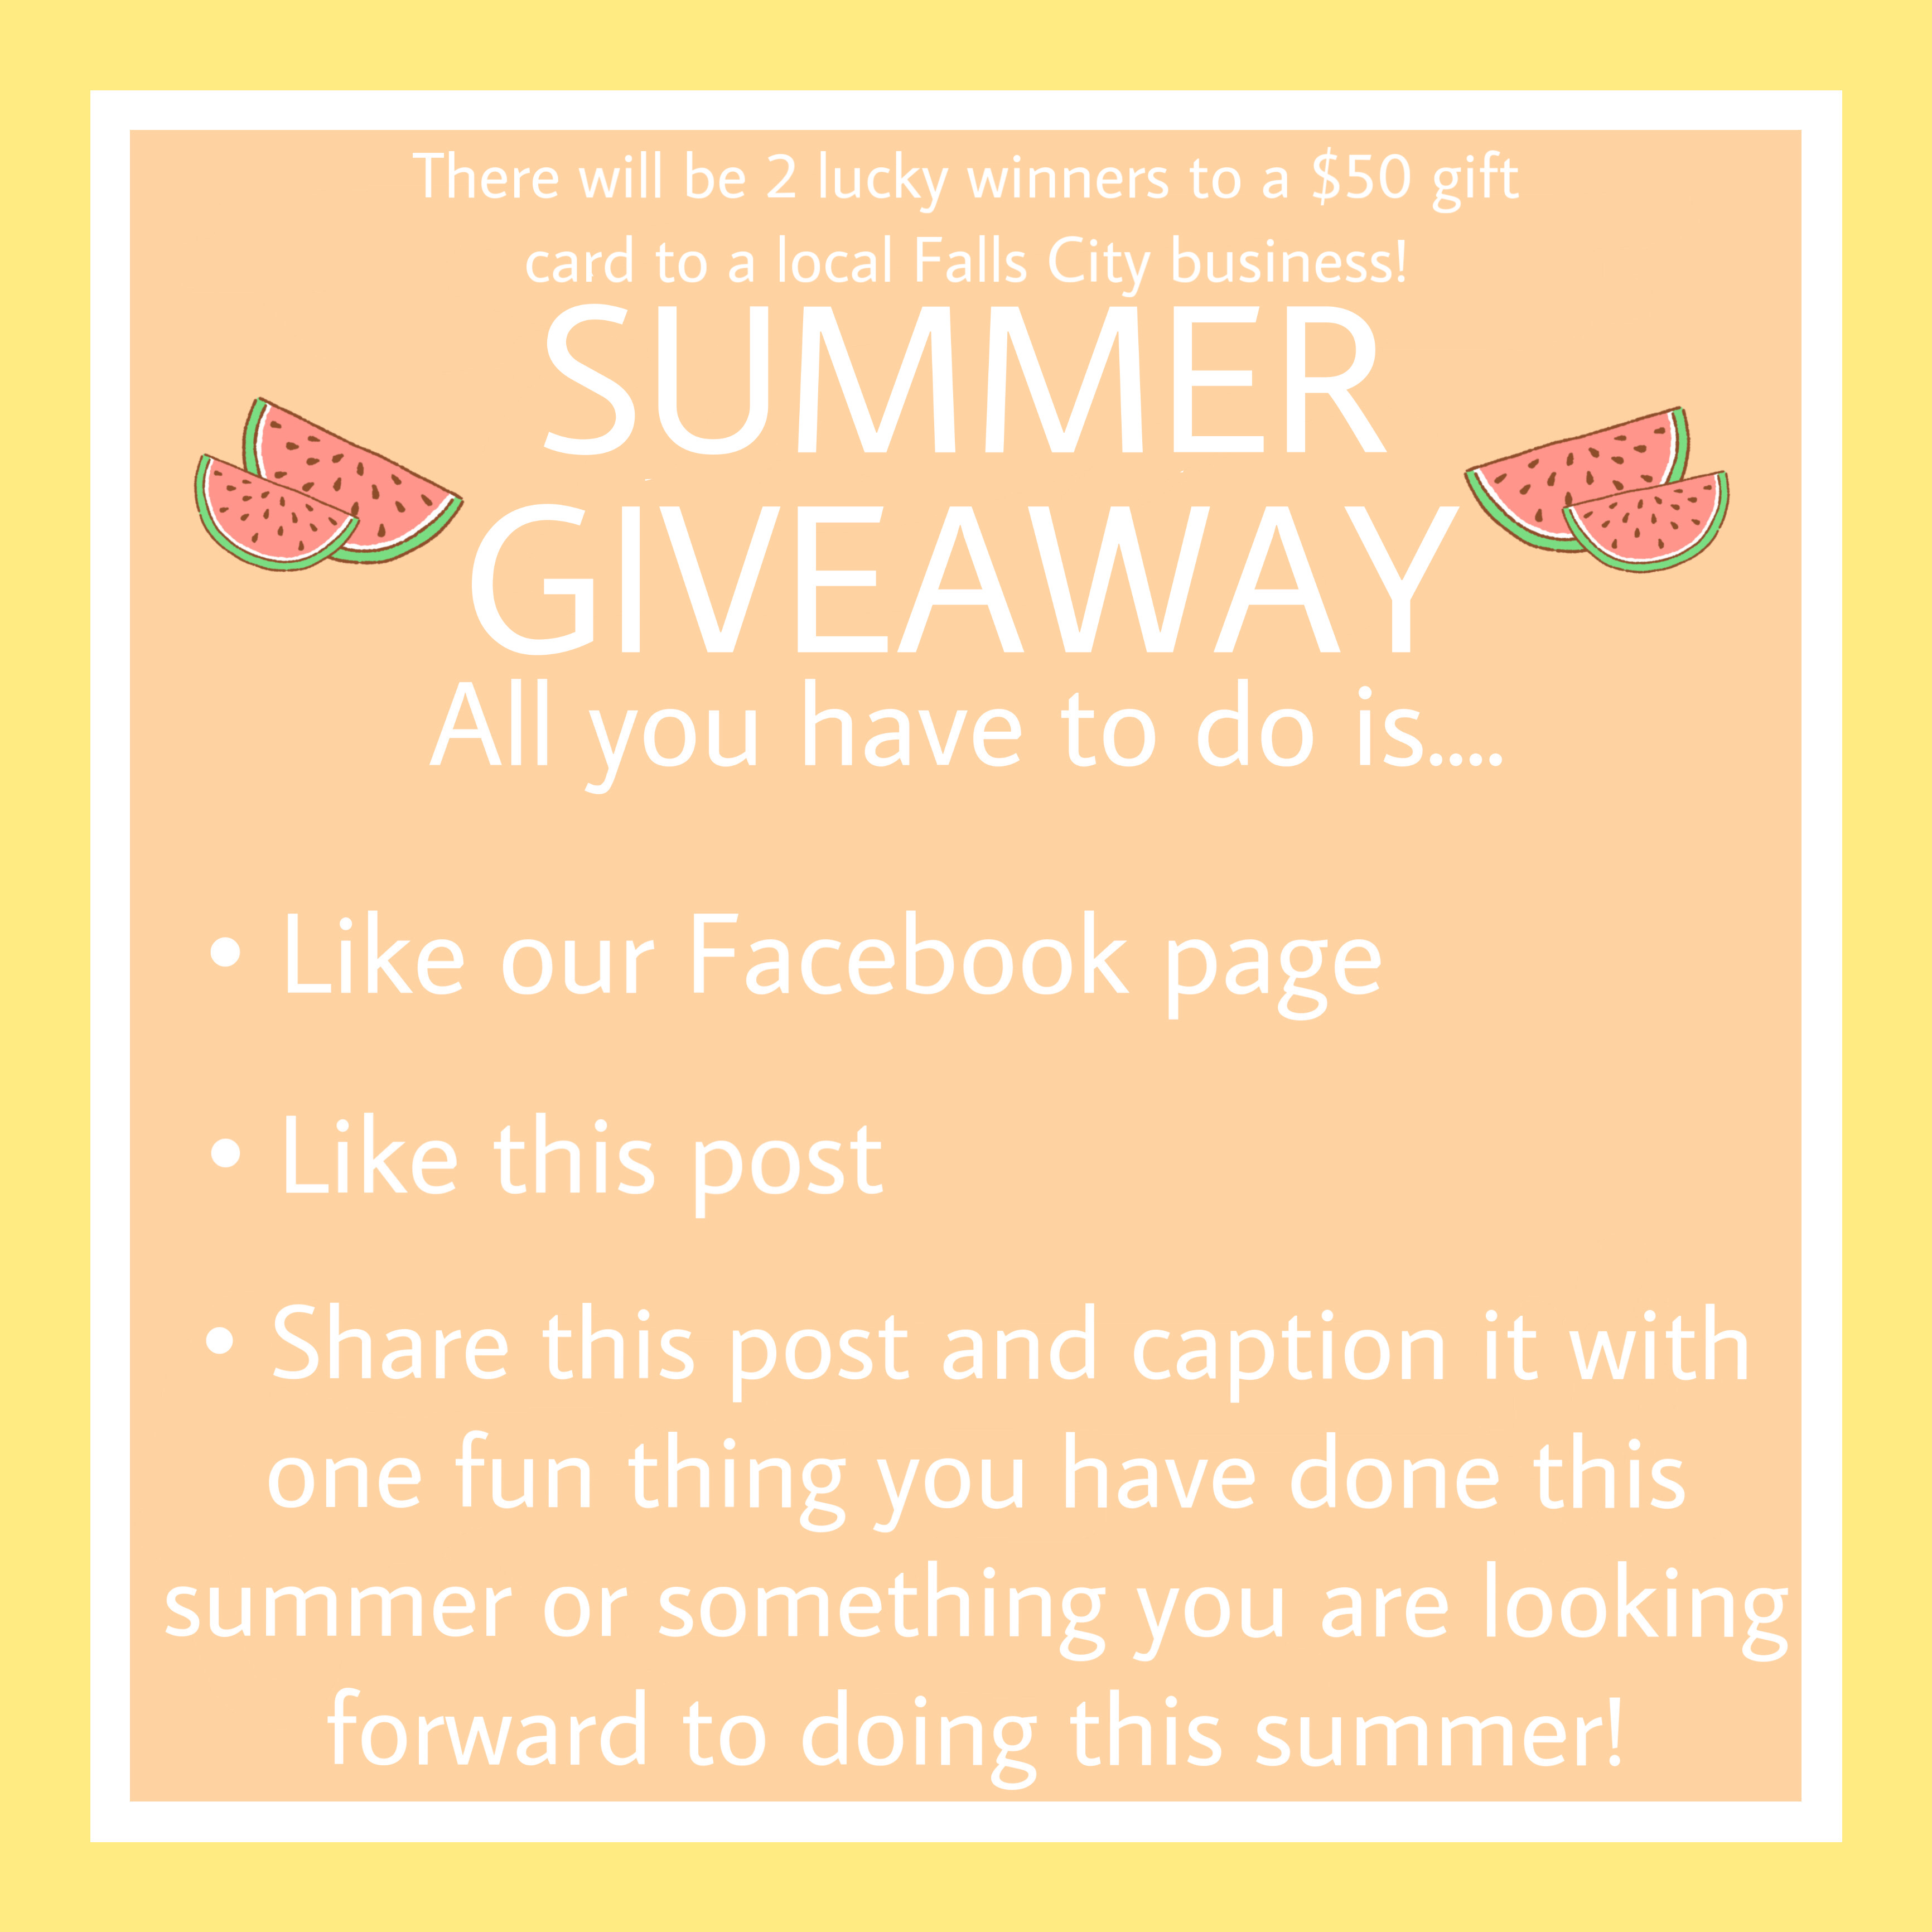 Summer Giveaway 2020